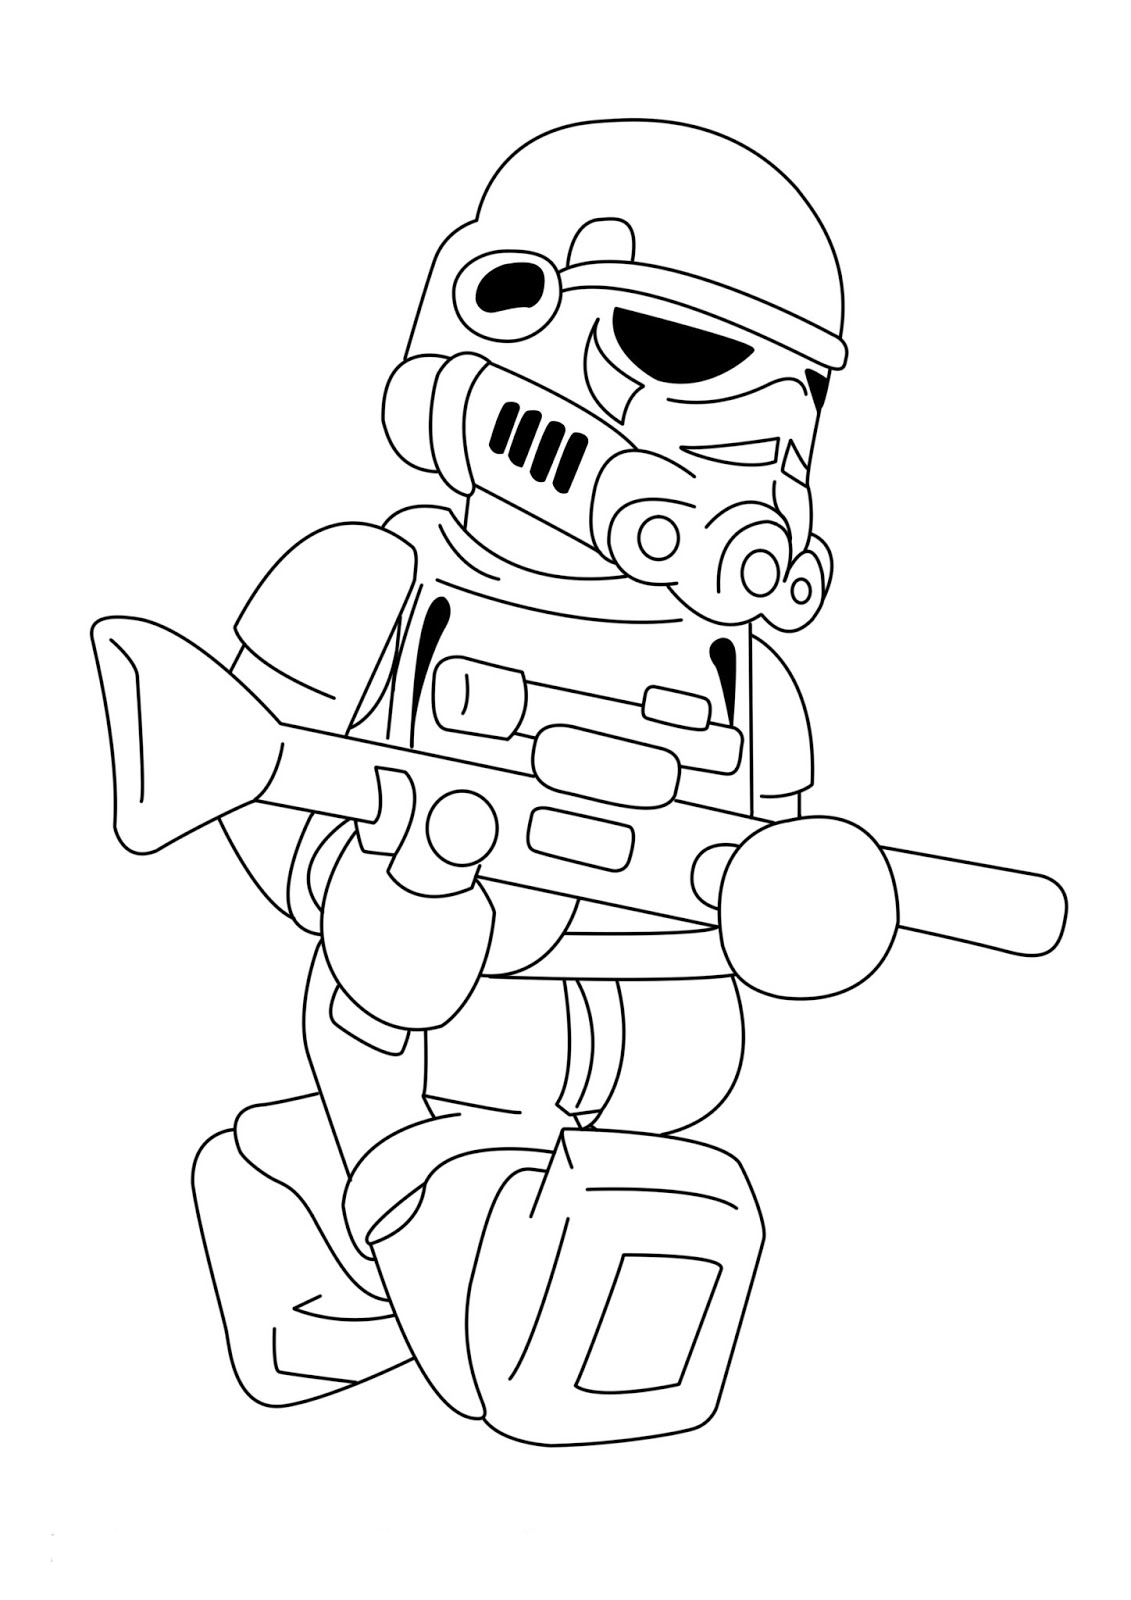 coloring pictures lego free printable lego coloring pages for kids coloring lego pictures